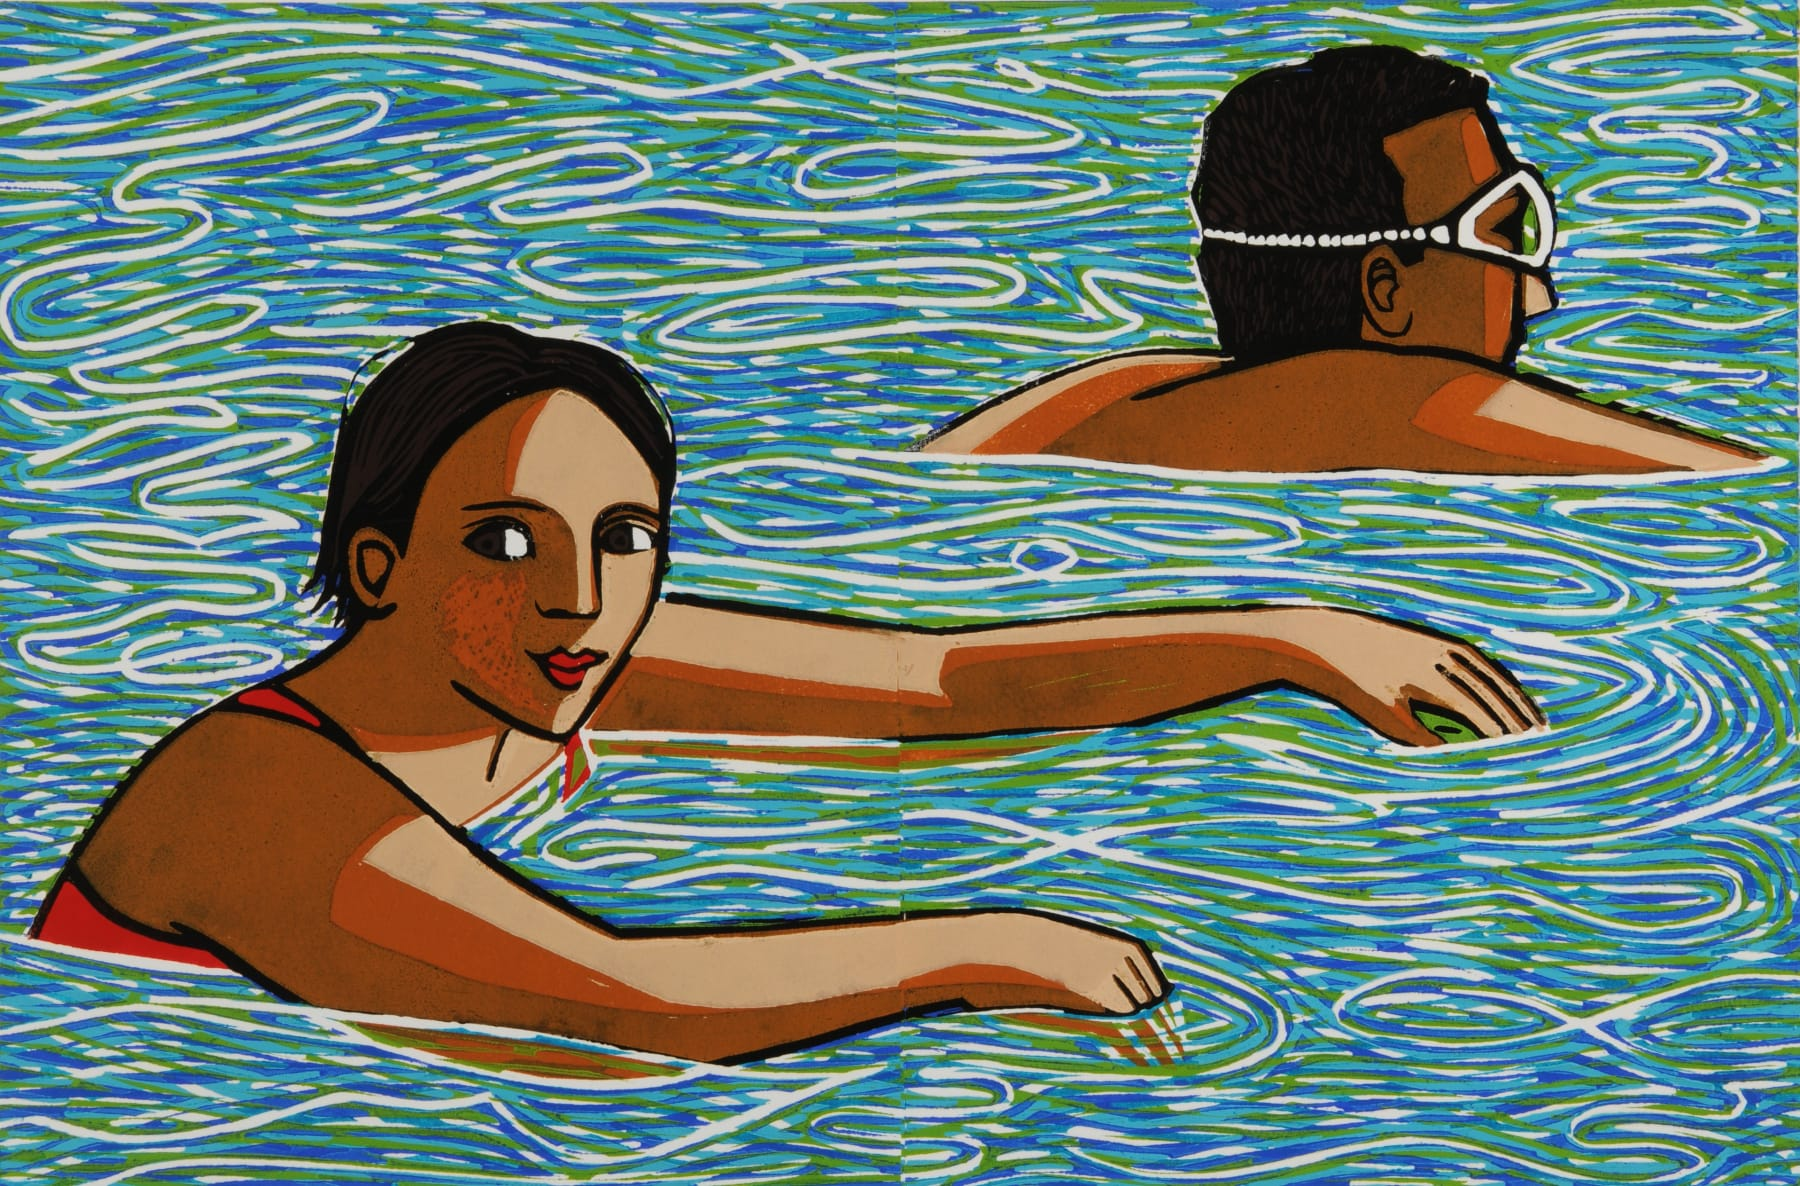 Anita Klein, Swimming in the Lake, 2014